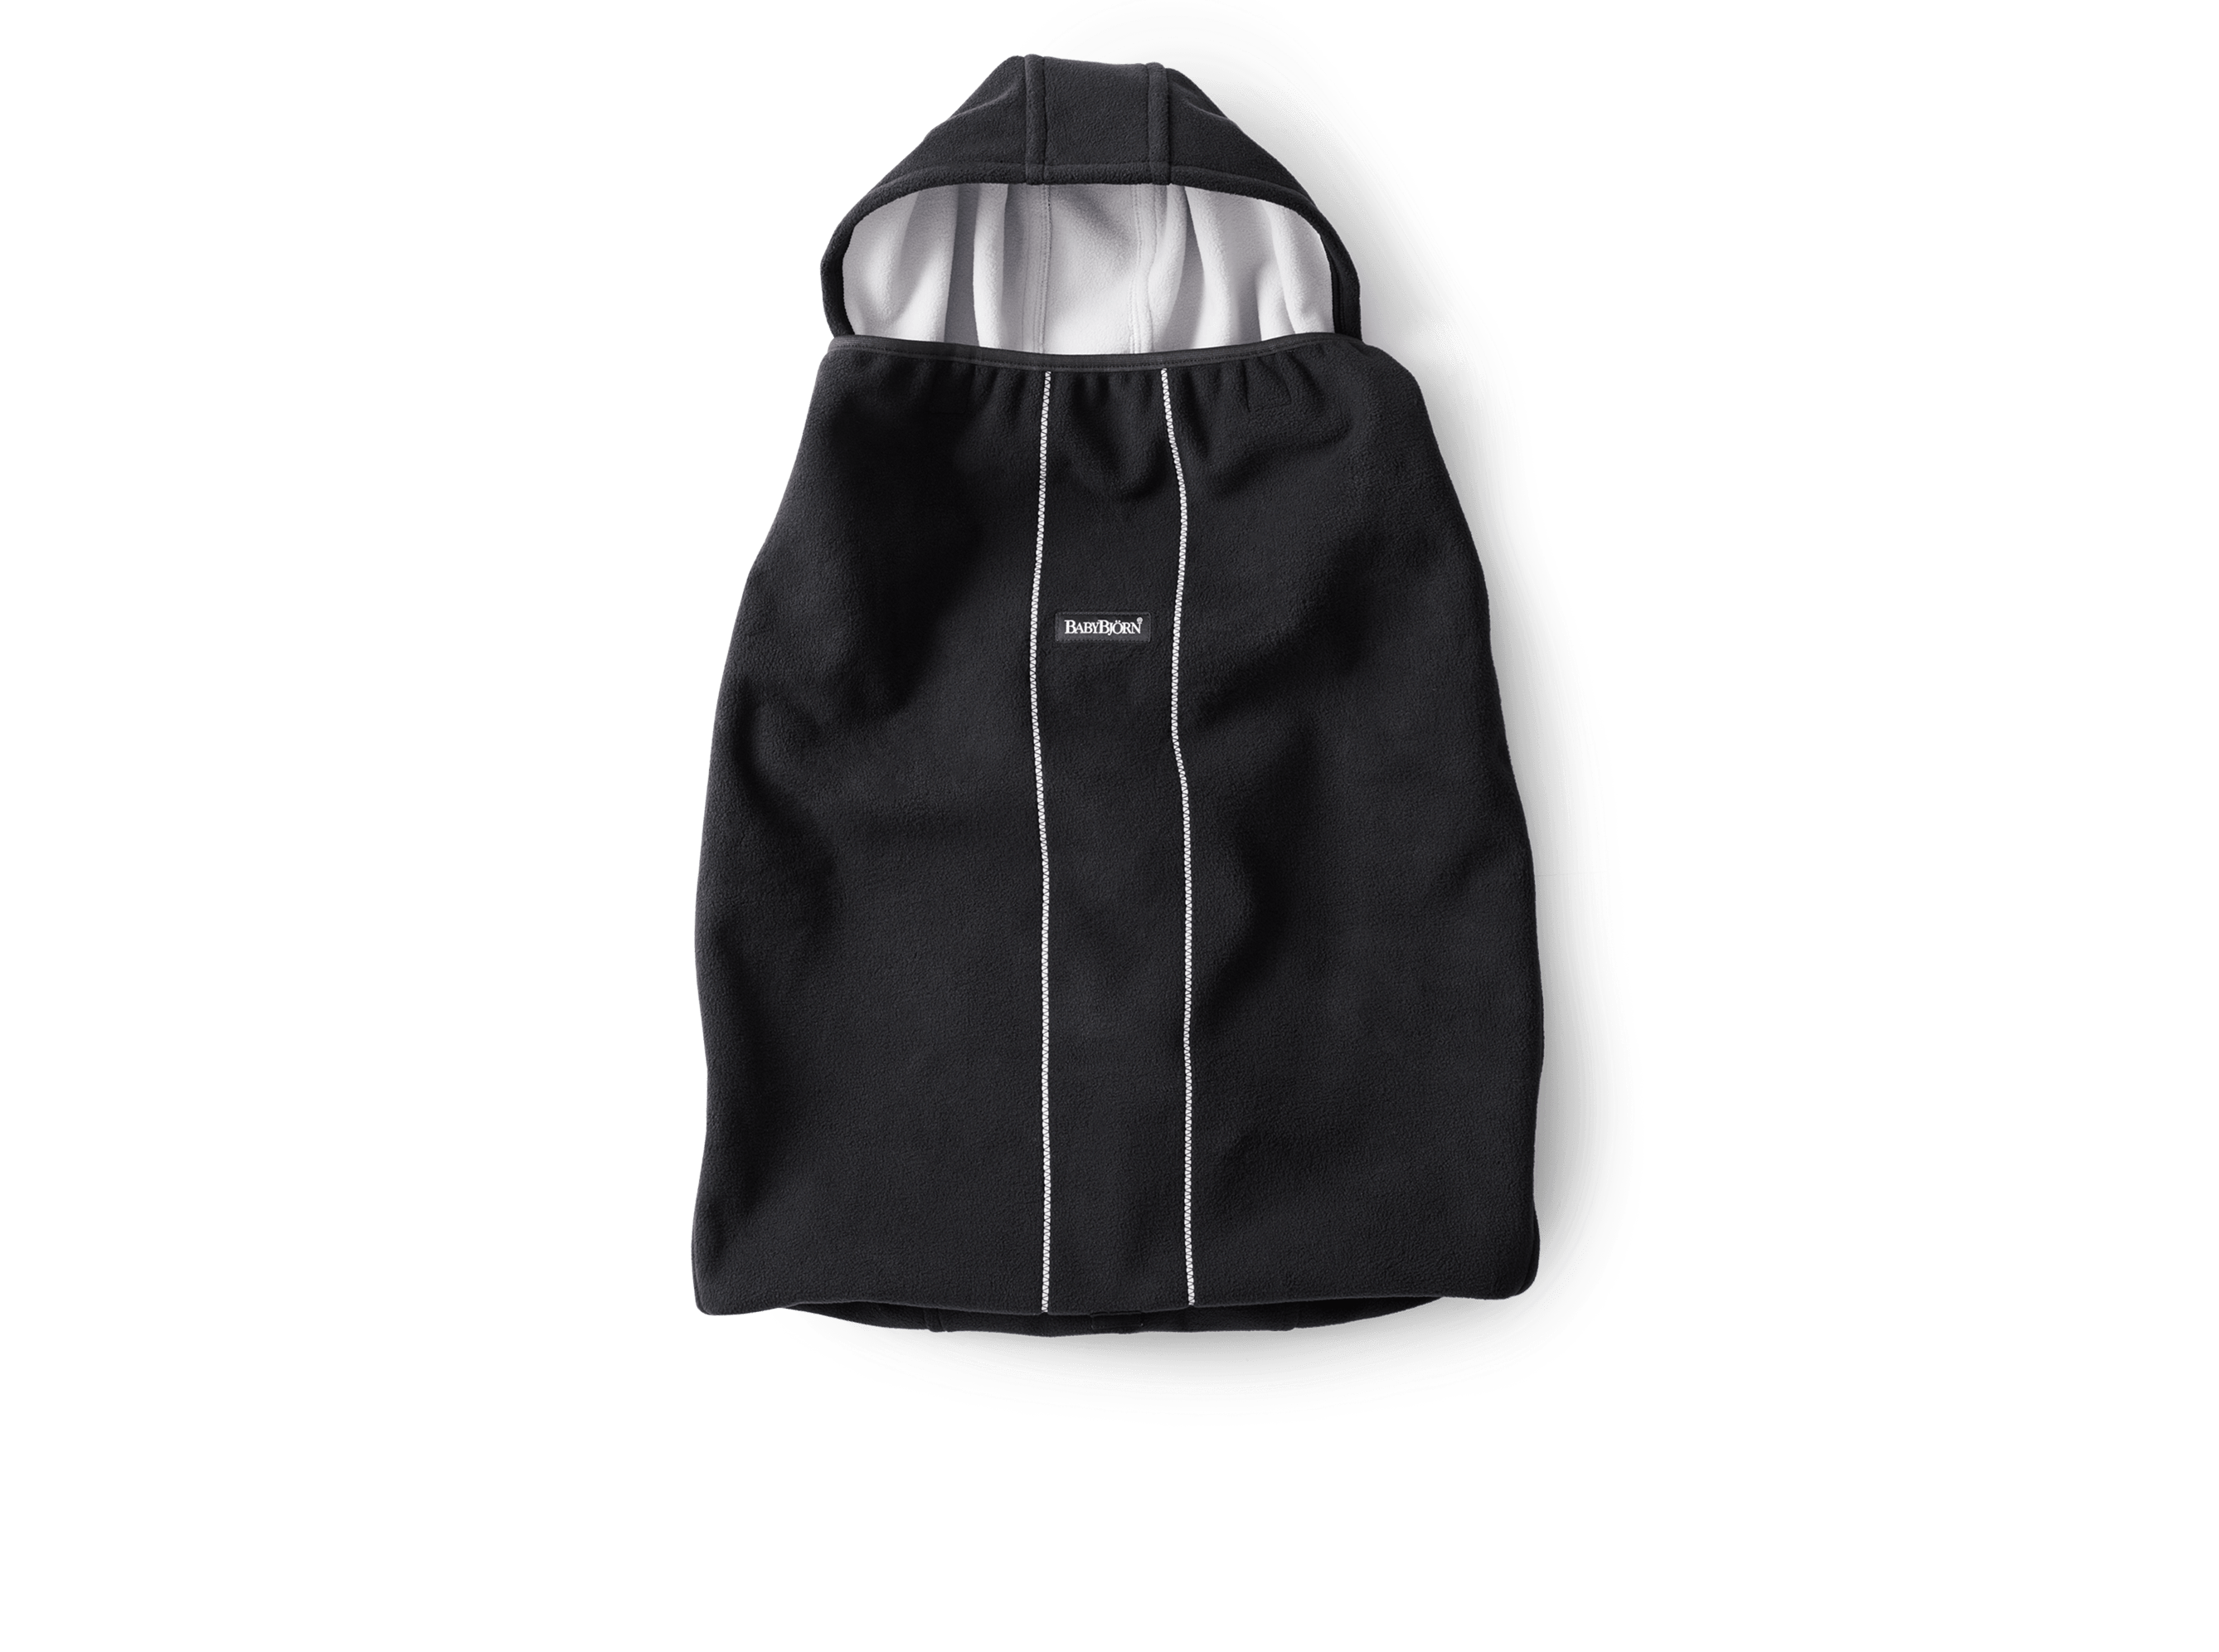 Cover for Baby Carrier - Babybjorn